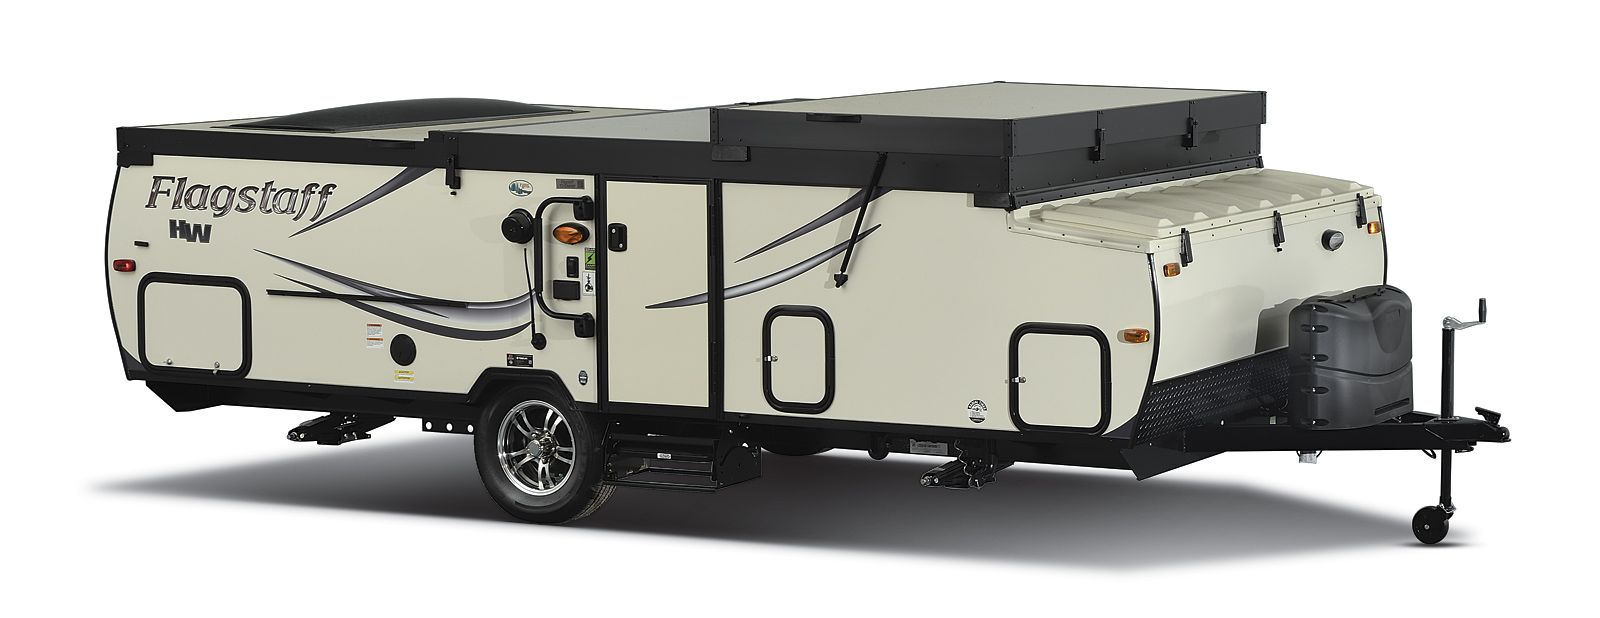 Flagstaff Hard Side Pop Up Campers Folding Camping Trailers By